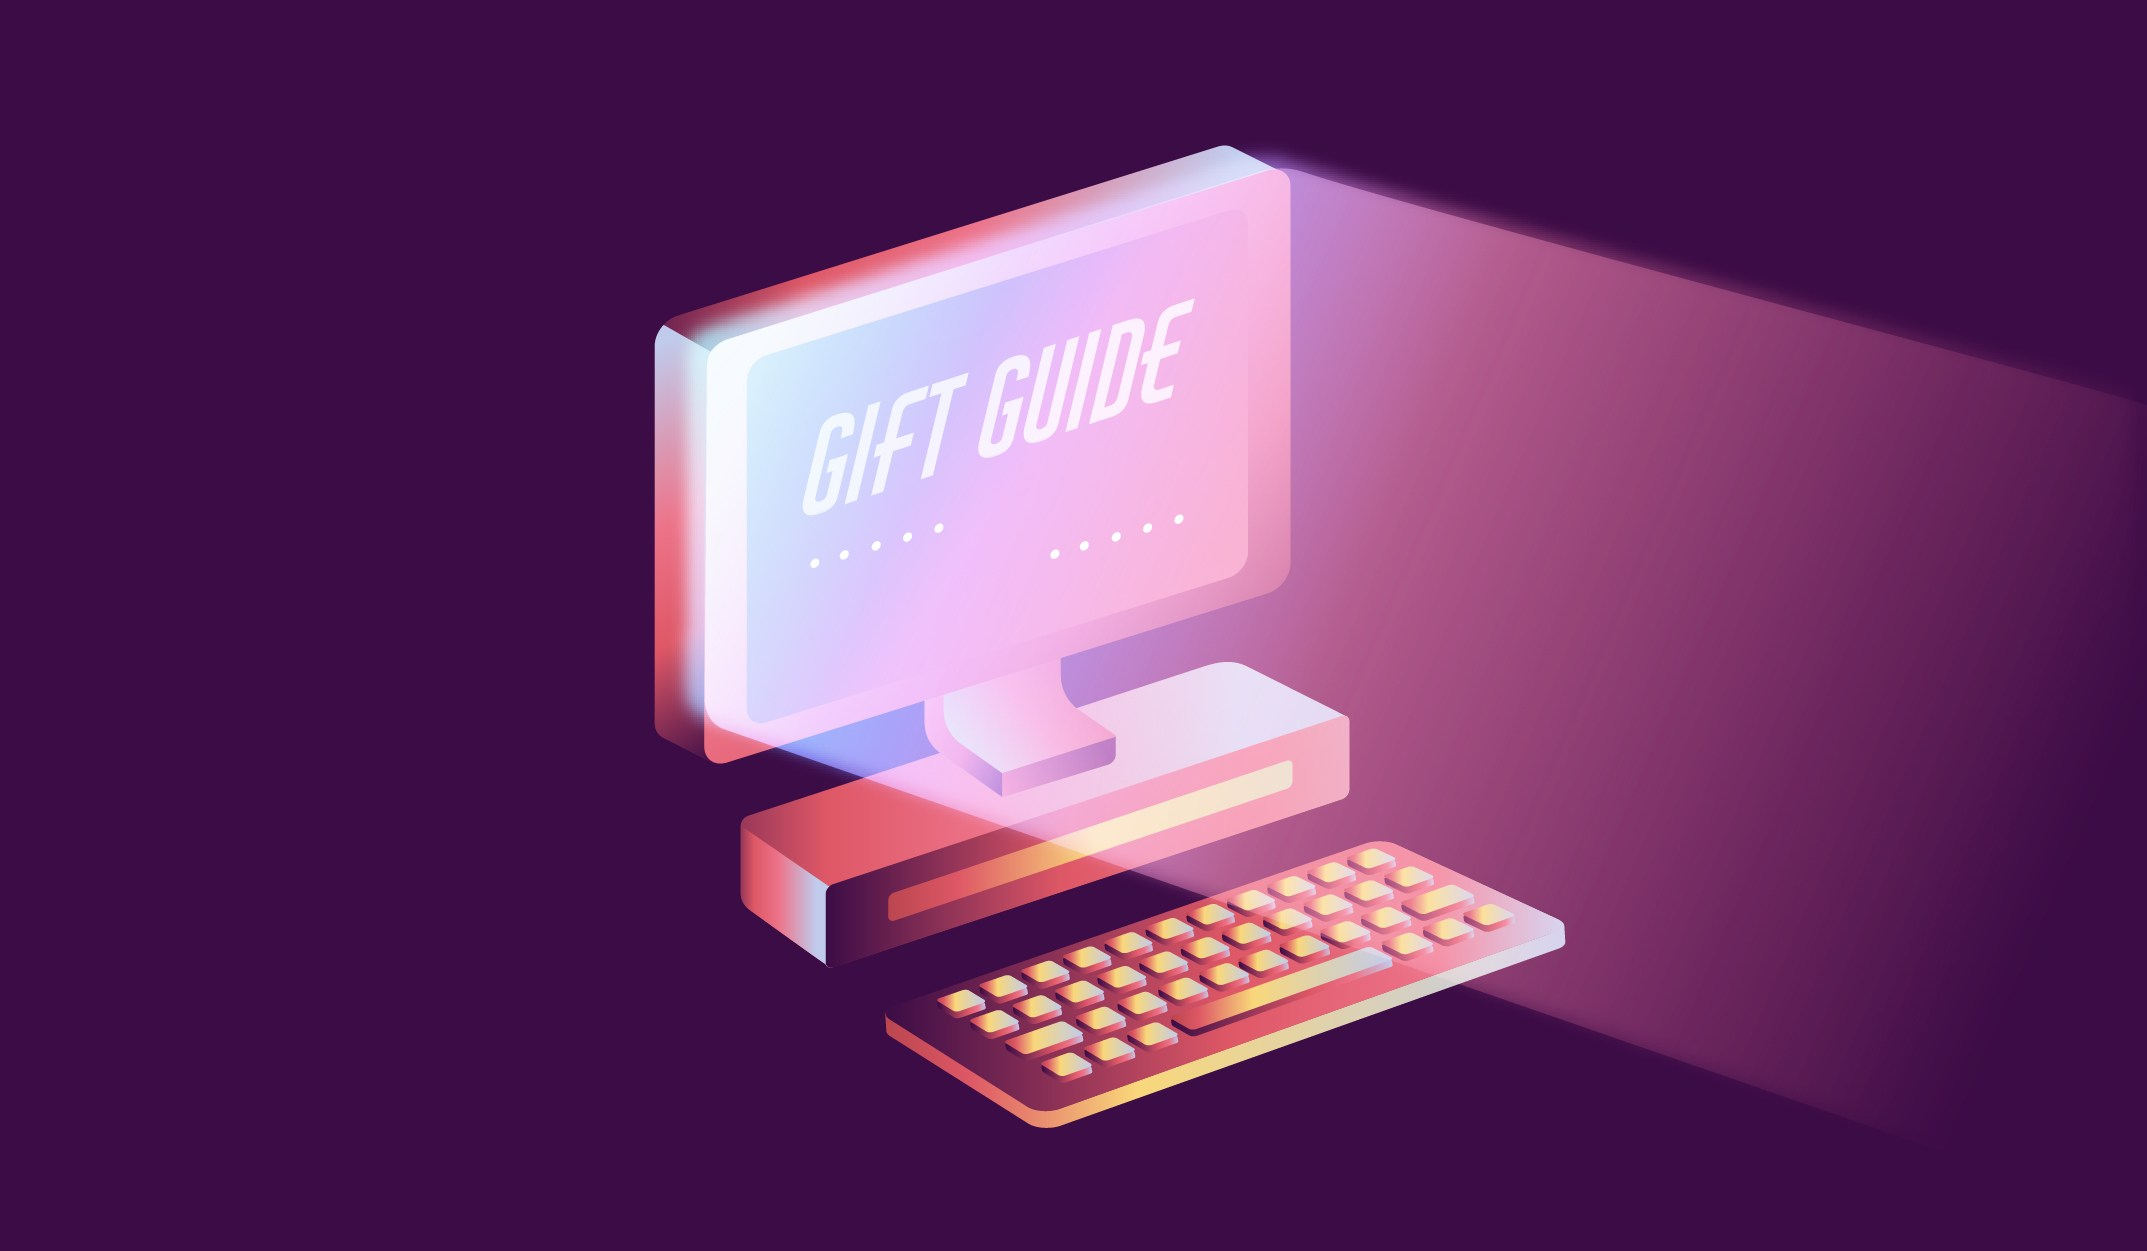 Online gift guides are playing a bigger — and more difficult — role for brands